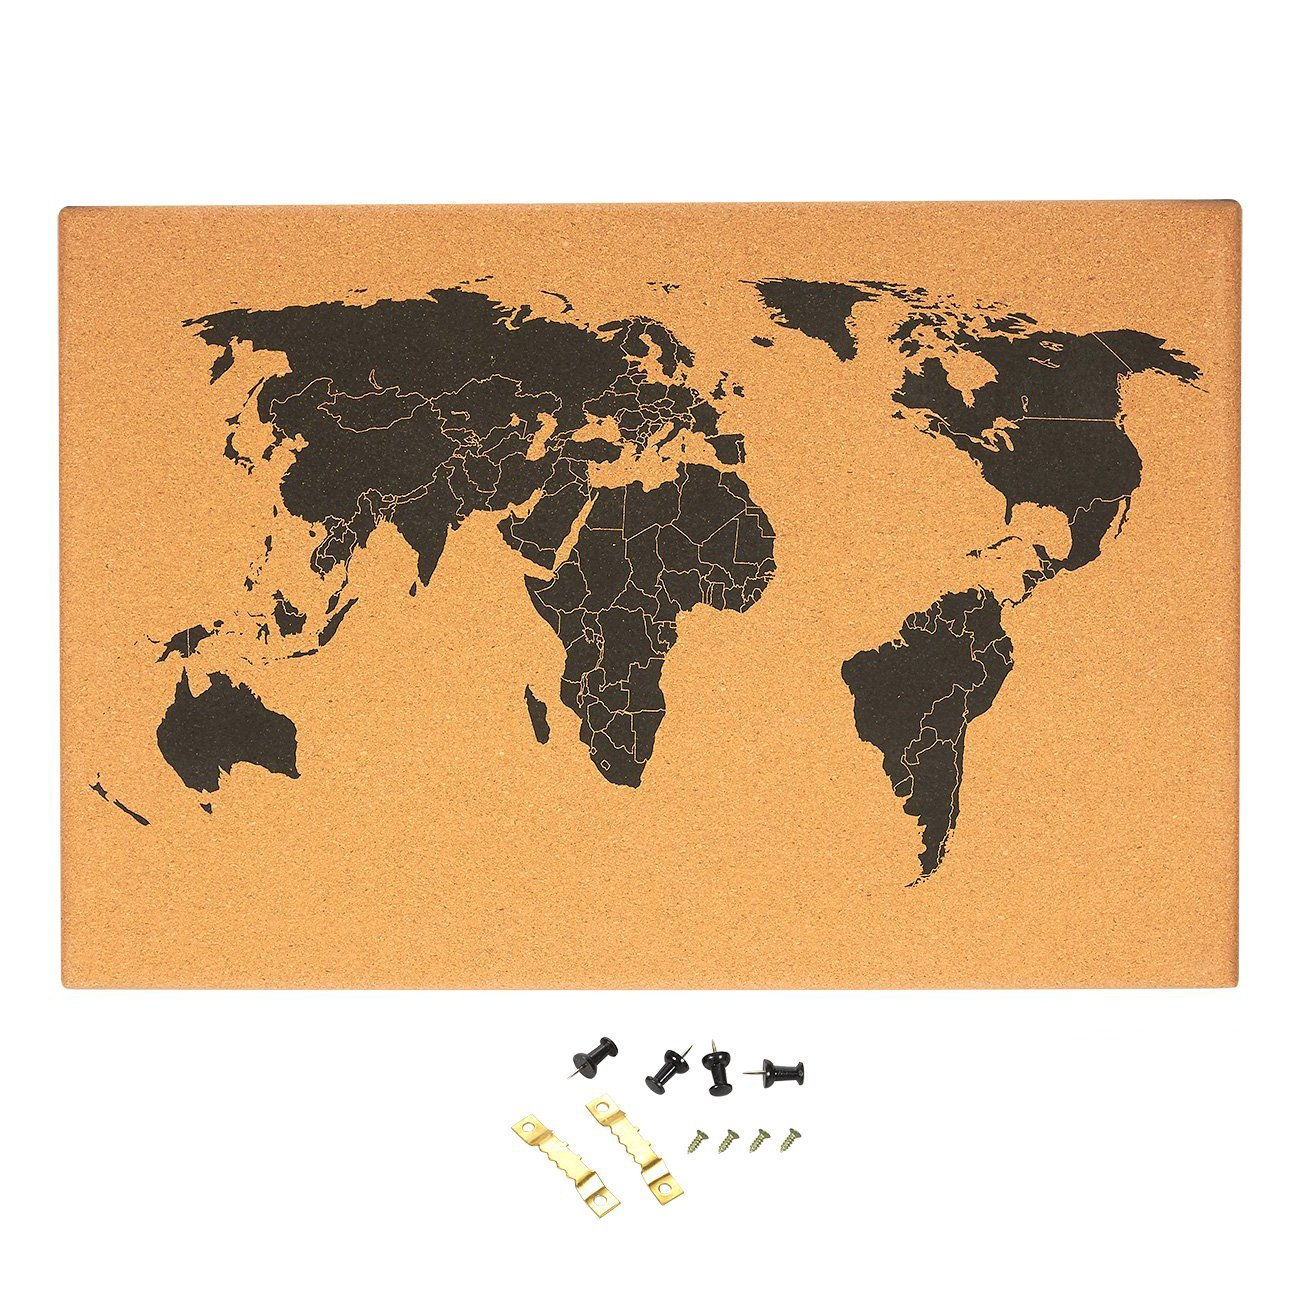 Cork board map of the world wall mount bulletin board with cork board map of the world wall mount bulletin board with detailed world map gumiabroncs Gallery